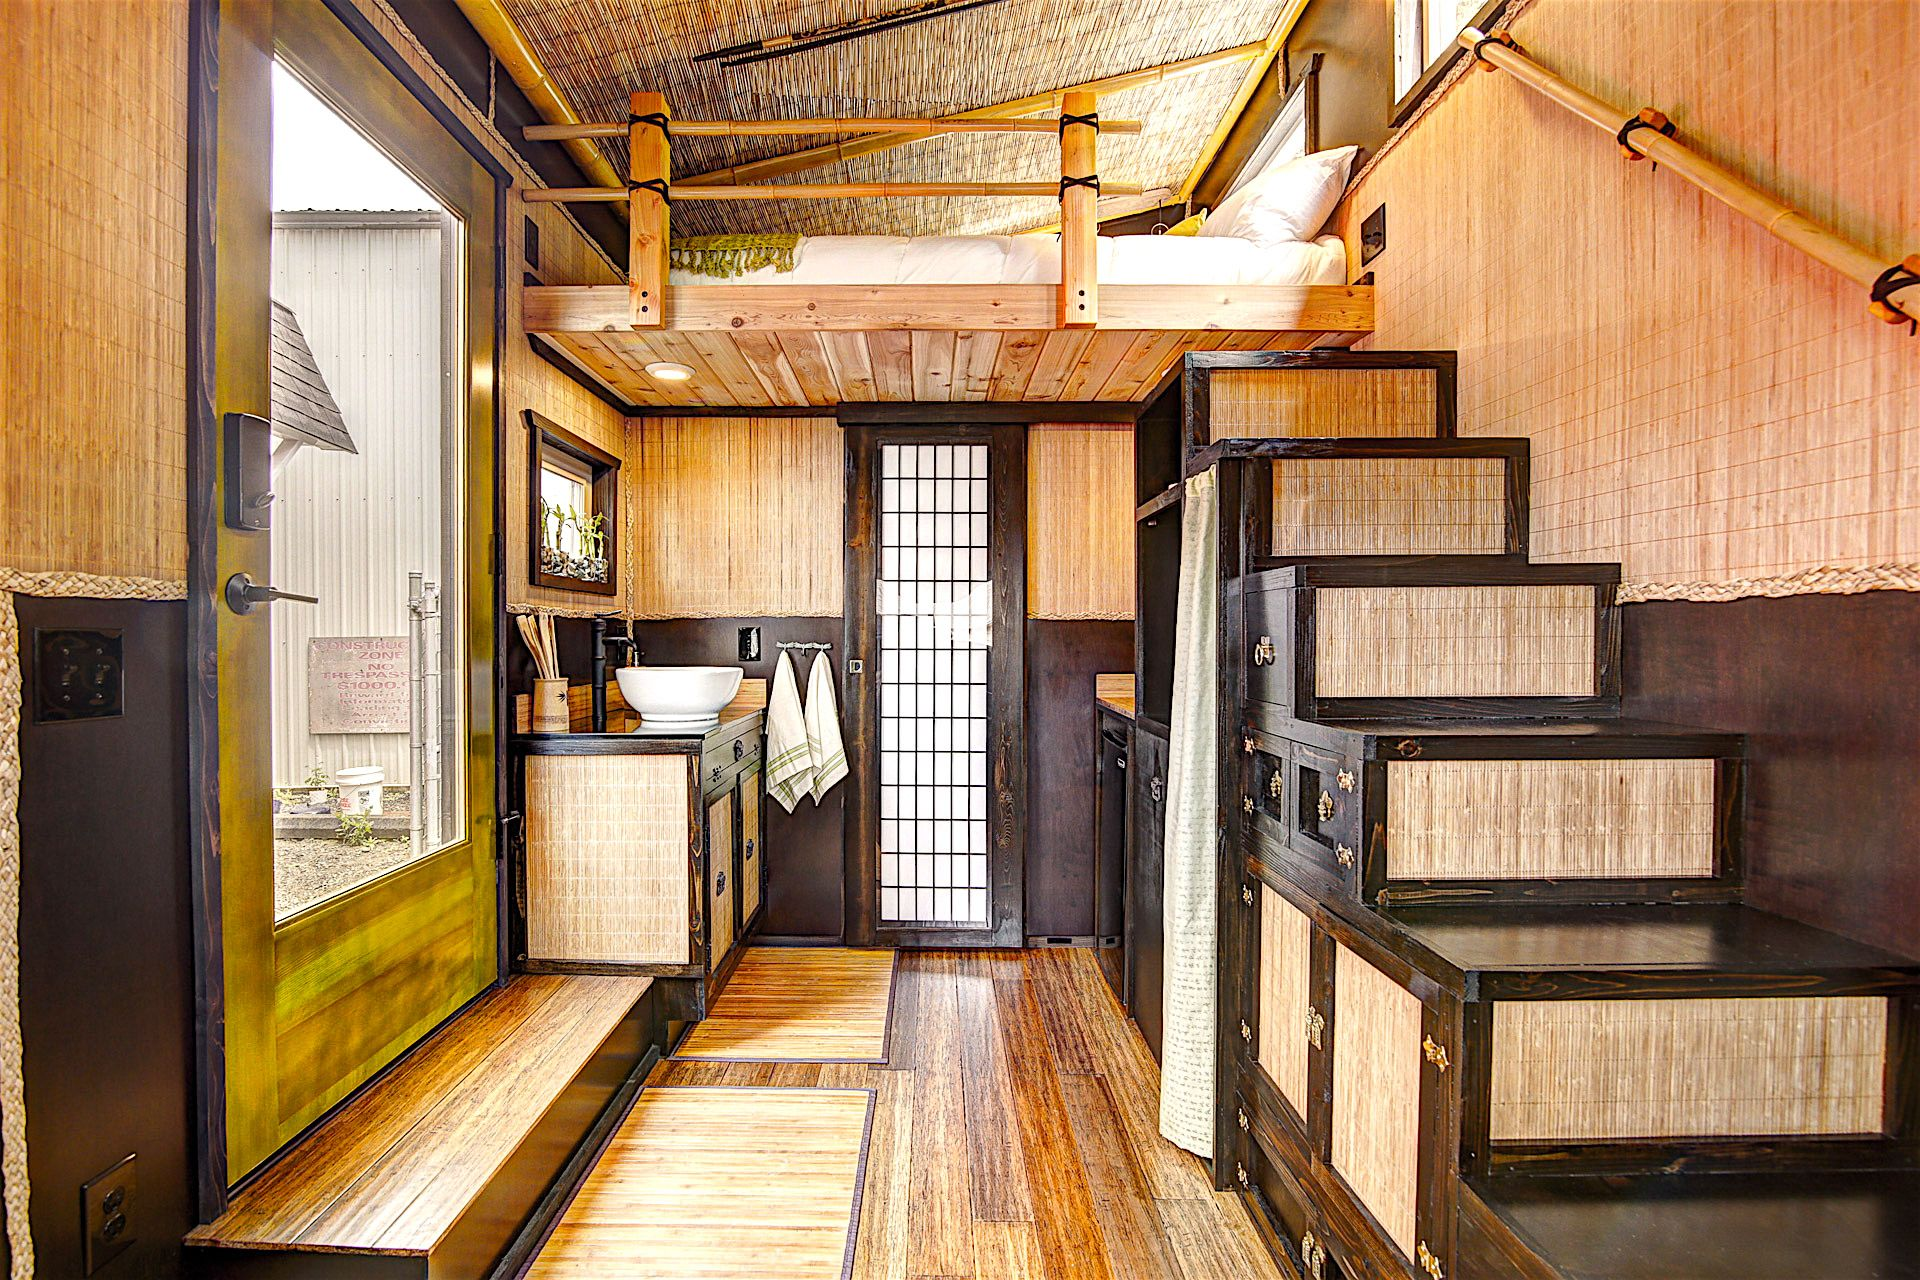 tiny house hotel. 12 tiny house hotels to try out micro living hotel